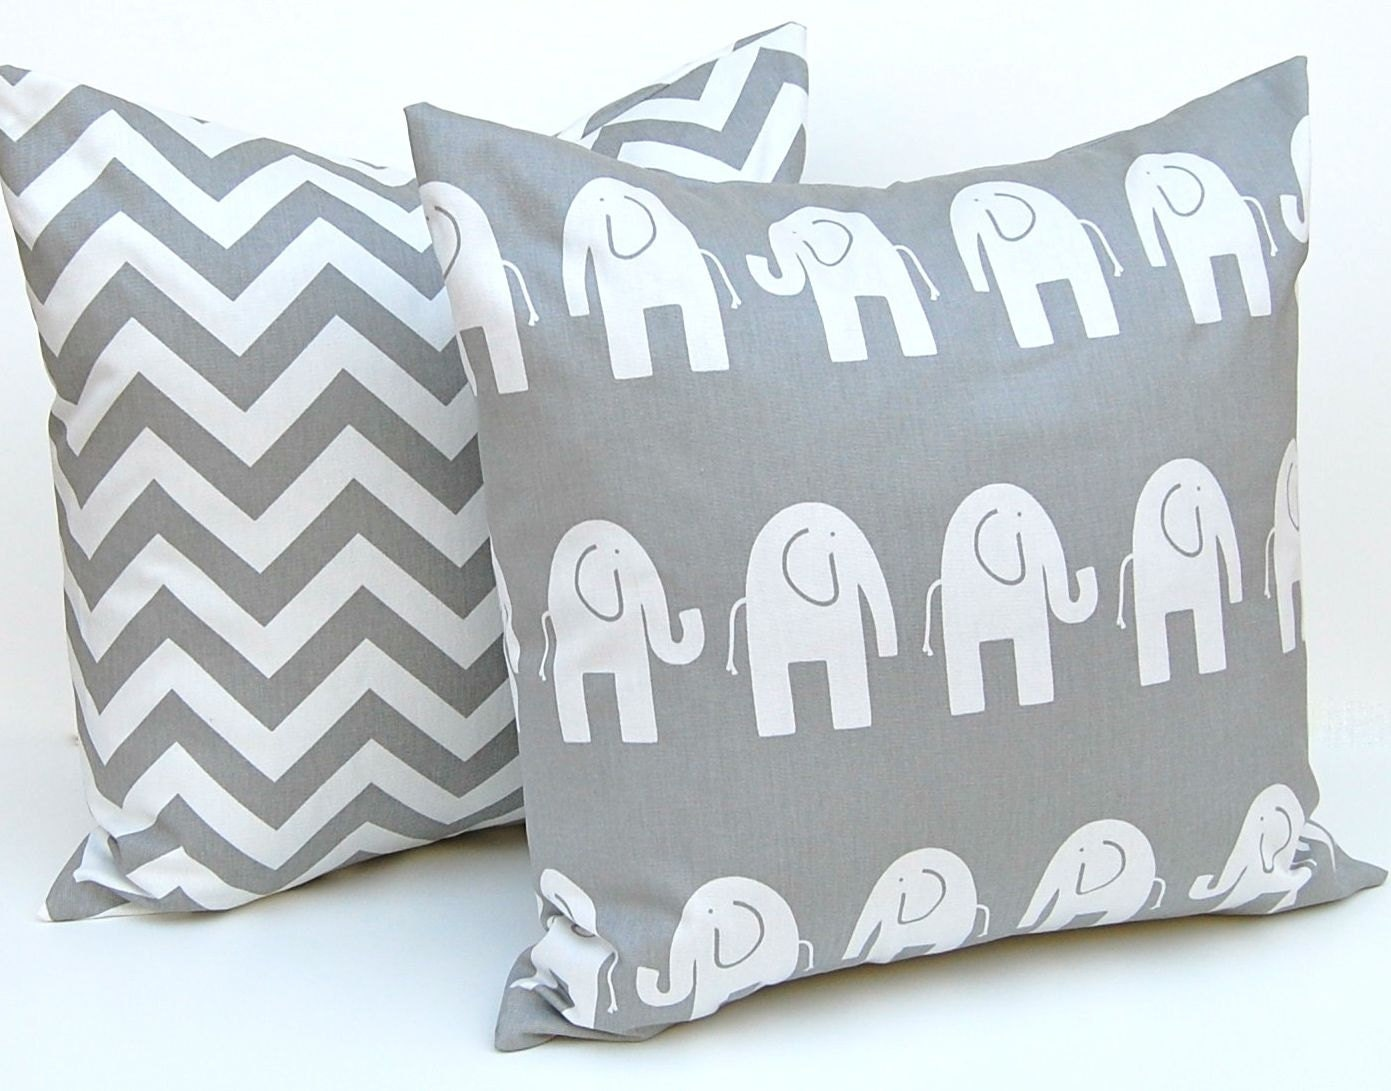 Pillow Decorative Pillows Children Decor Gray Animal Pillow Covers Accent Pillows Nursery Decor 16 x 16 Inches Elephant and Chevron Prints